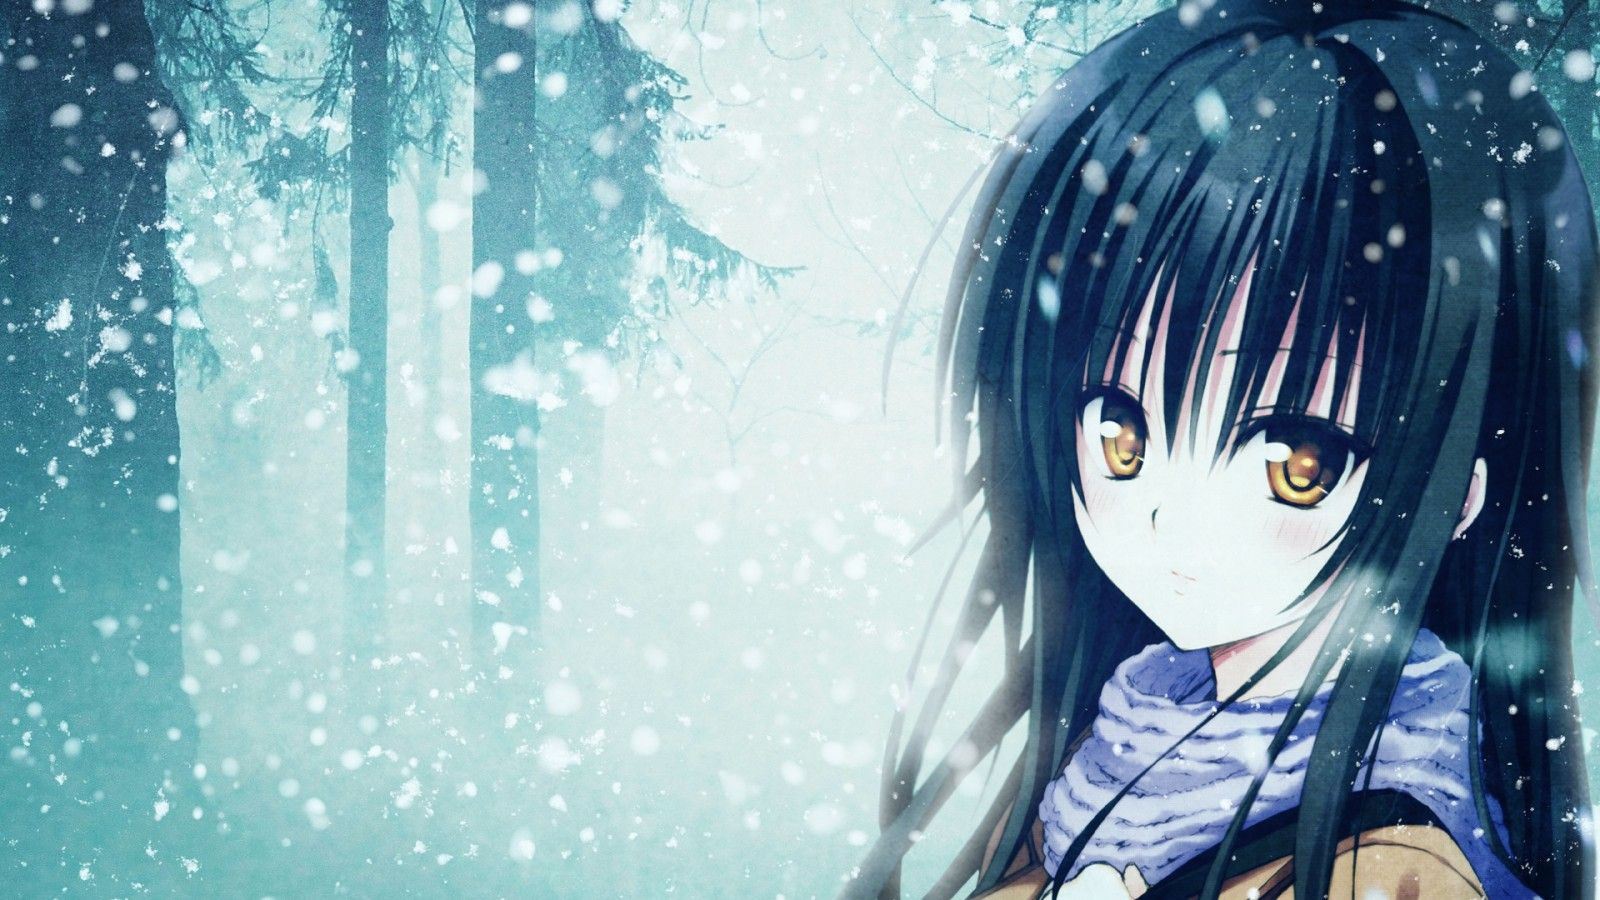 Collection of Beautiful Anime Girl Wallpaper on HDWallpapers